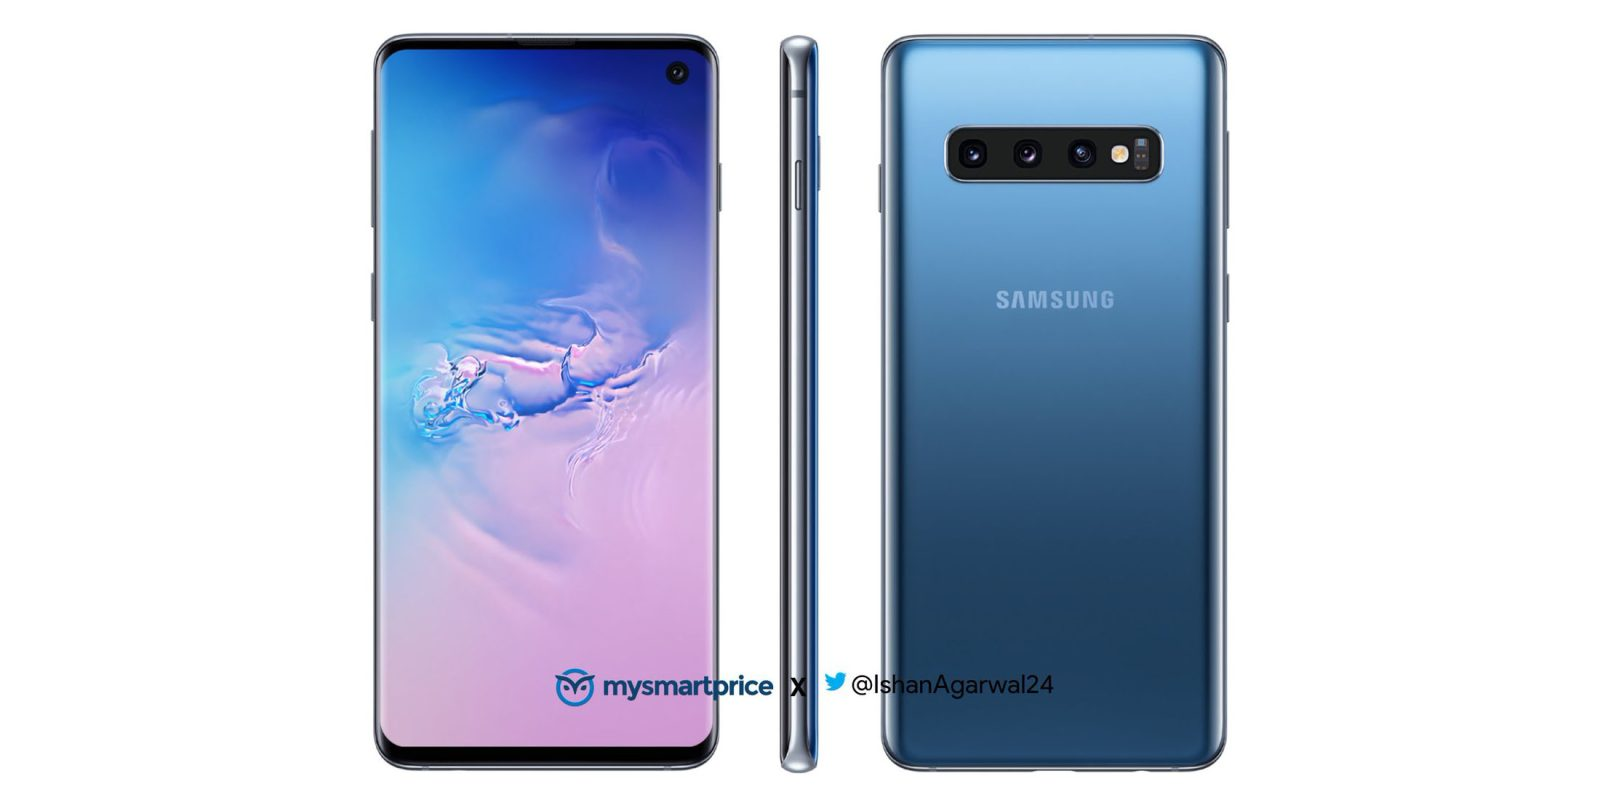 Samsung Galaxy S10 leaks in slick blue color variant as banner confirms another year for the headphone jack